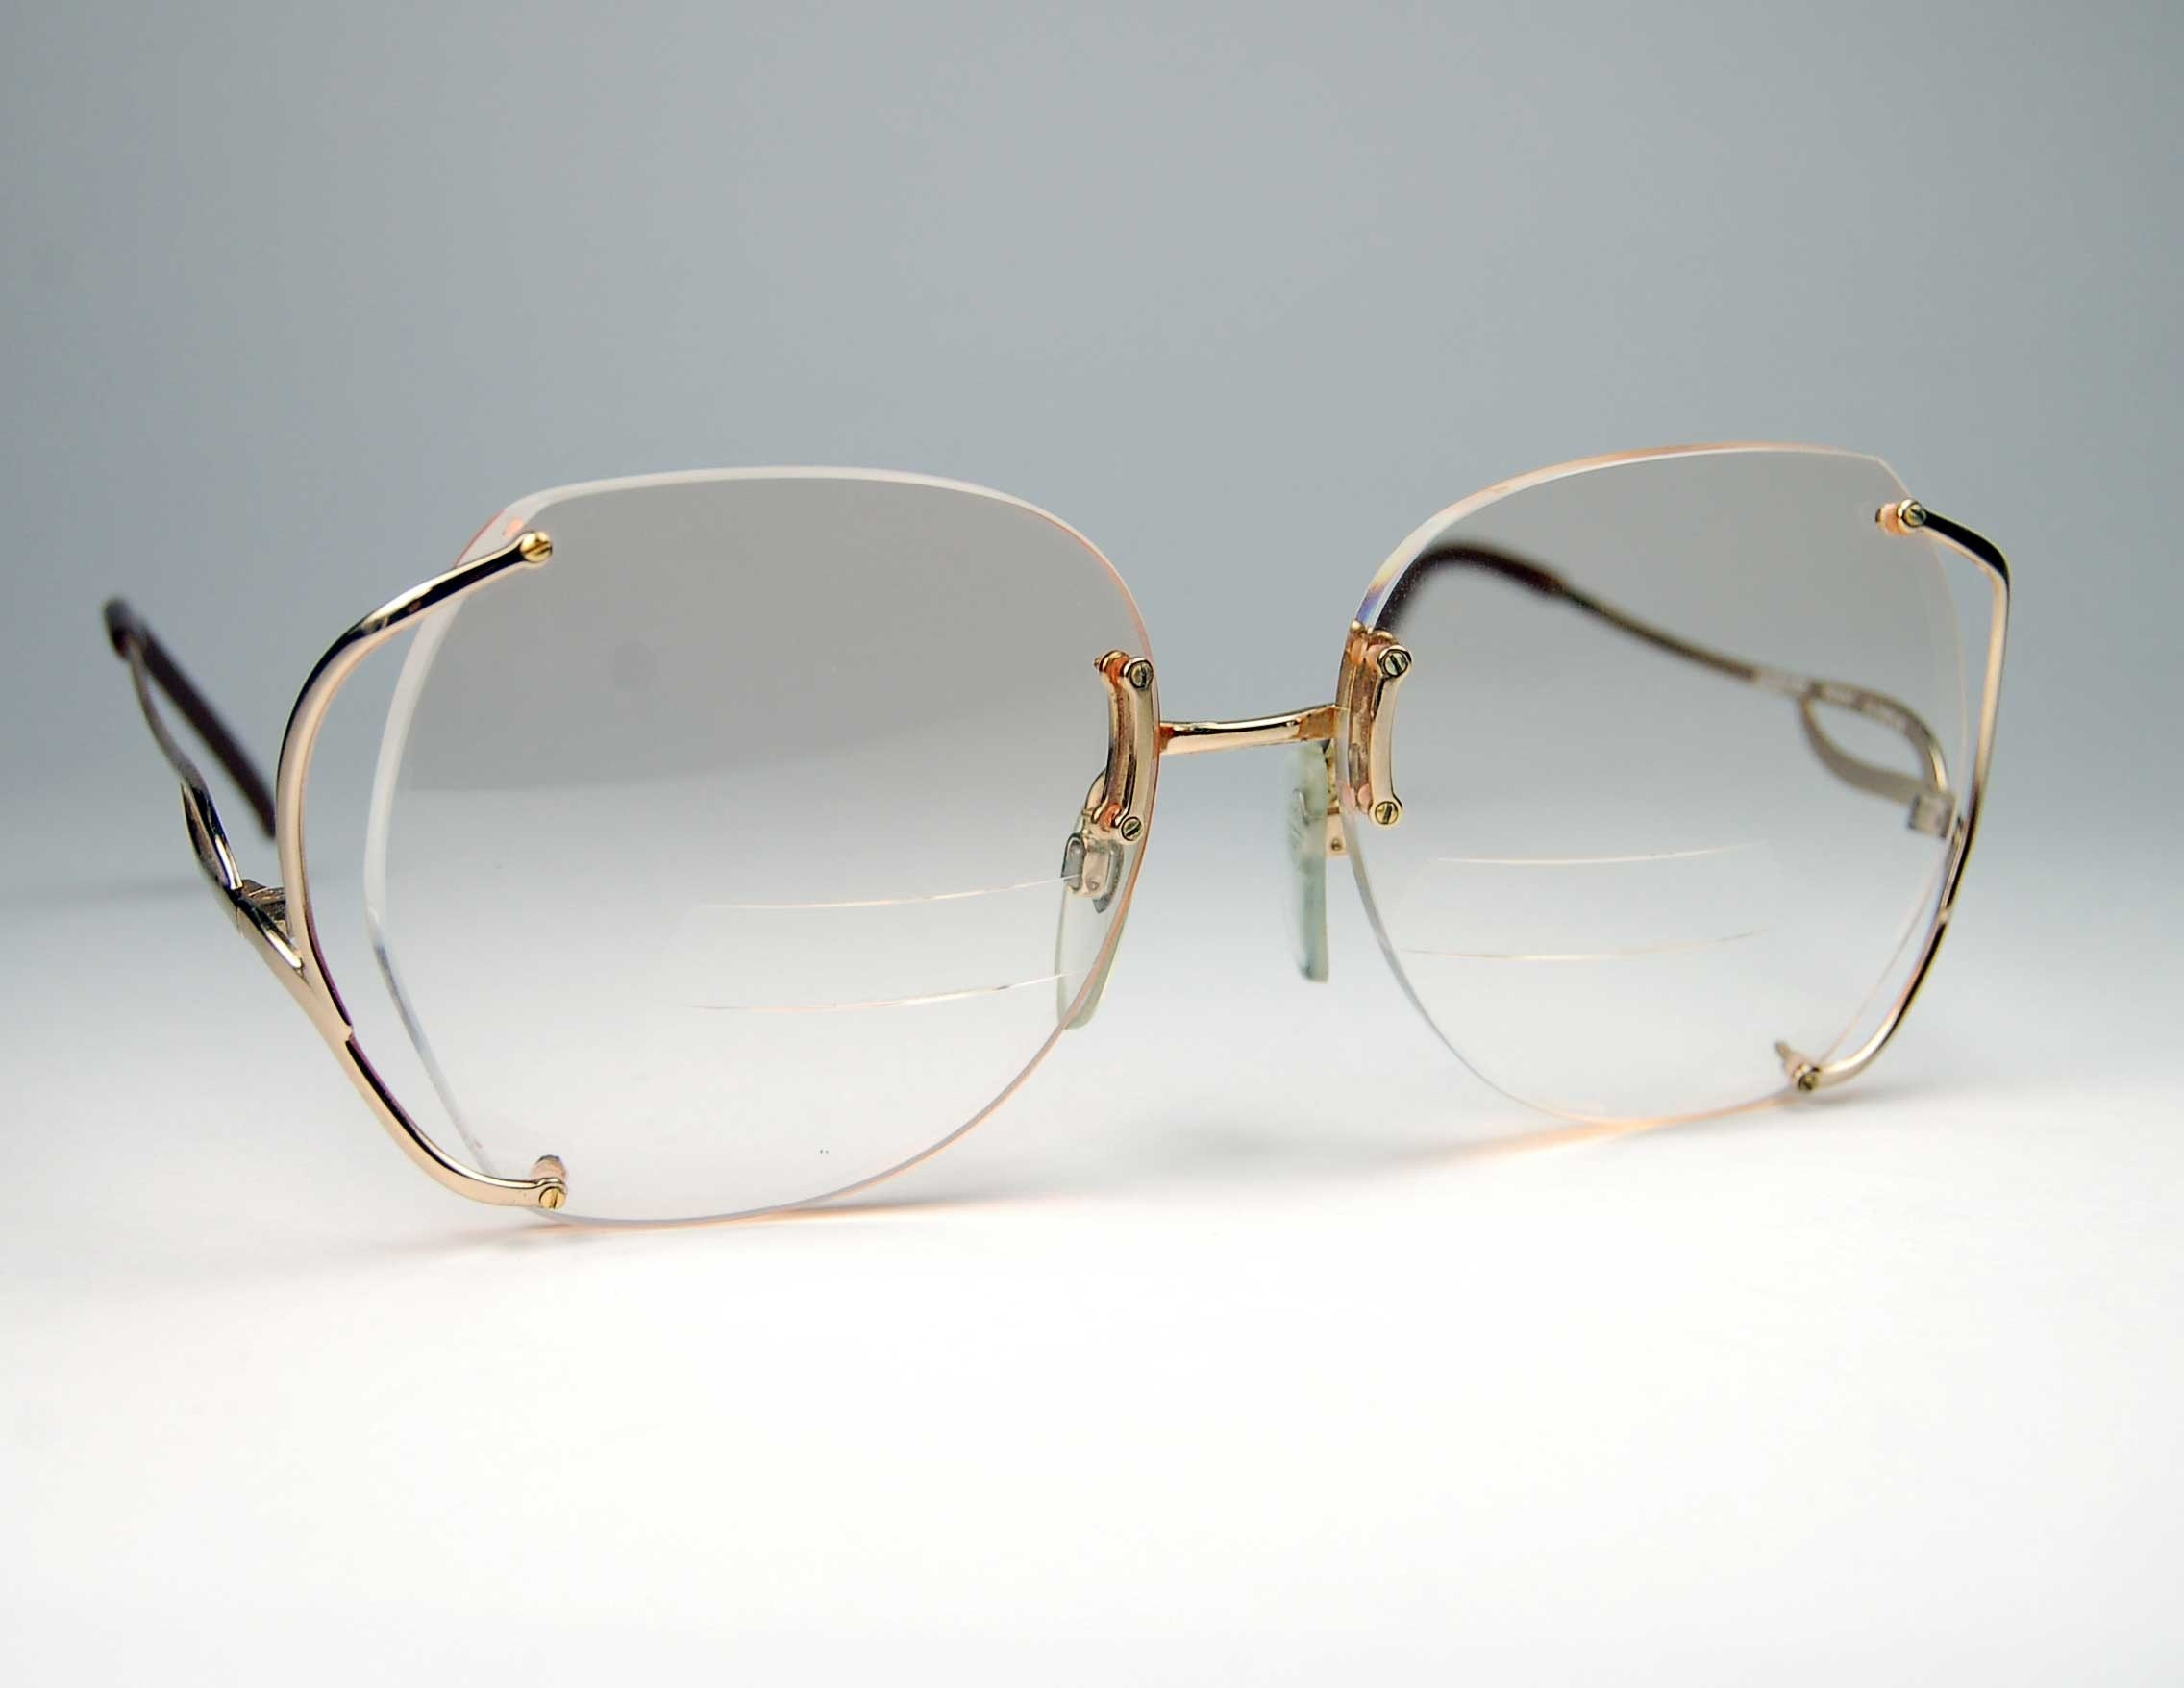 Eyeglass Frames Fairview Heights Il : Vintage Luxottica Gold Rimless Eyeglass Frames made in Italy